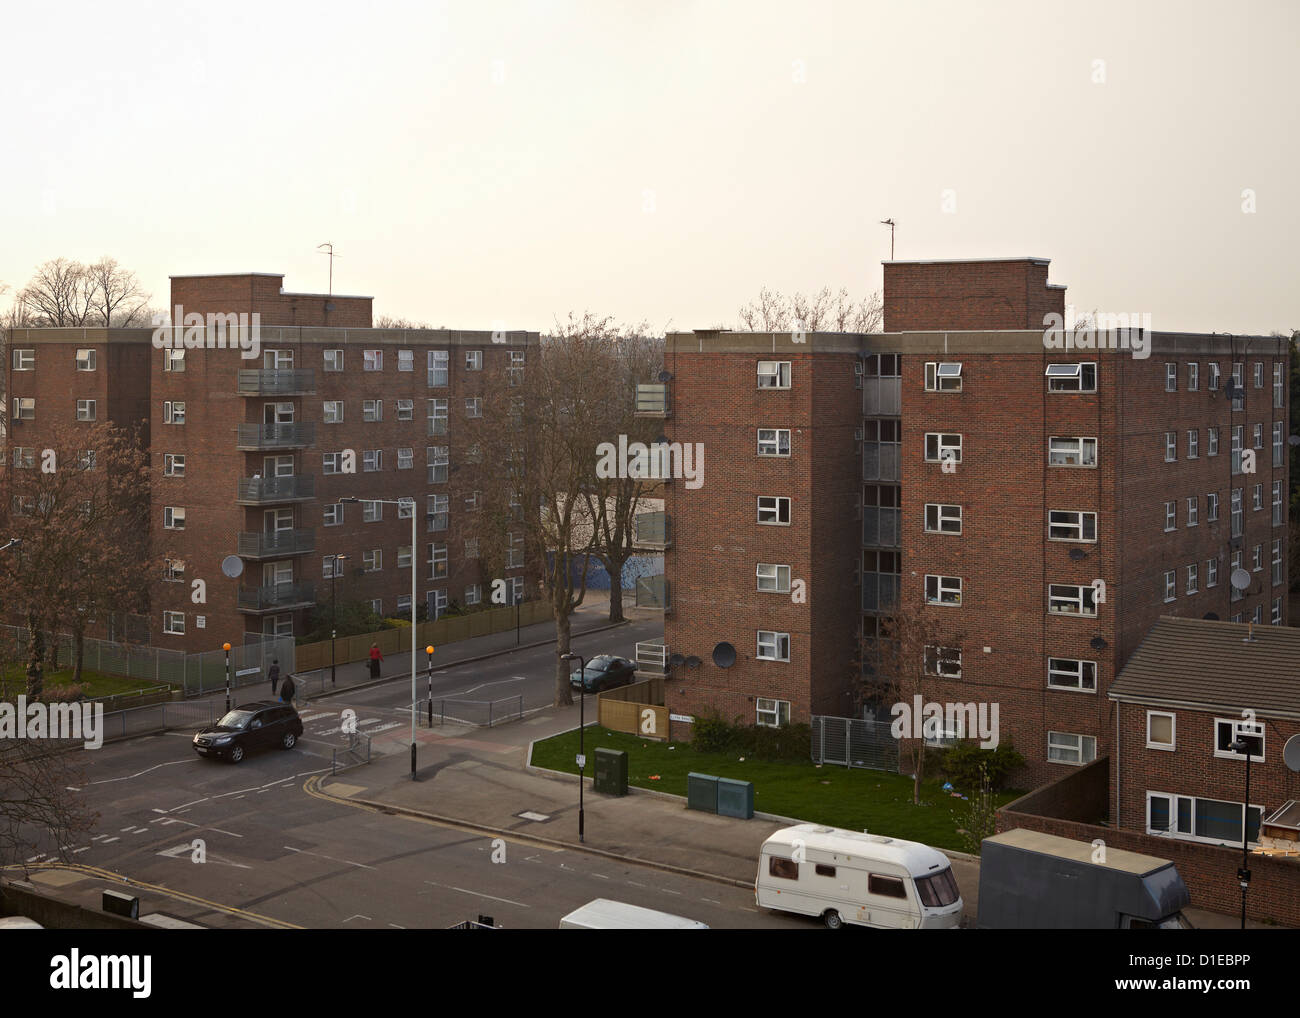 Council owned tower blocks, Lawrence Road, London N15, England, United Kingdom, Europe - Stock Image